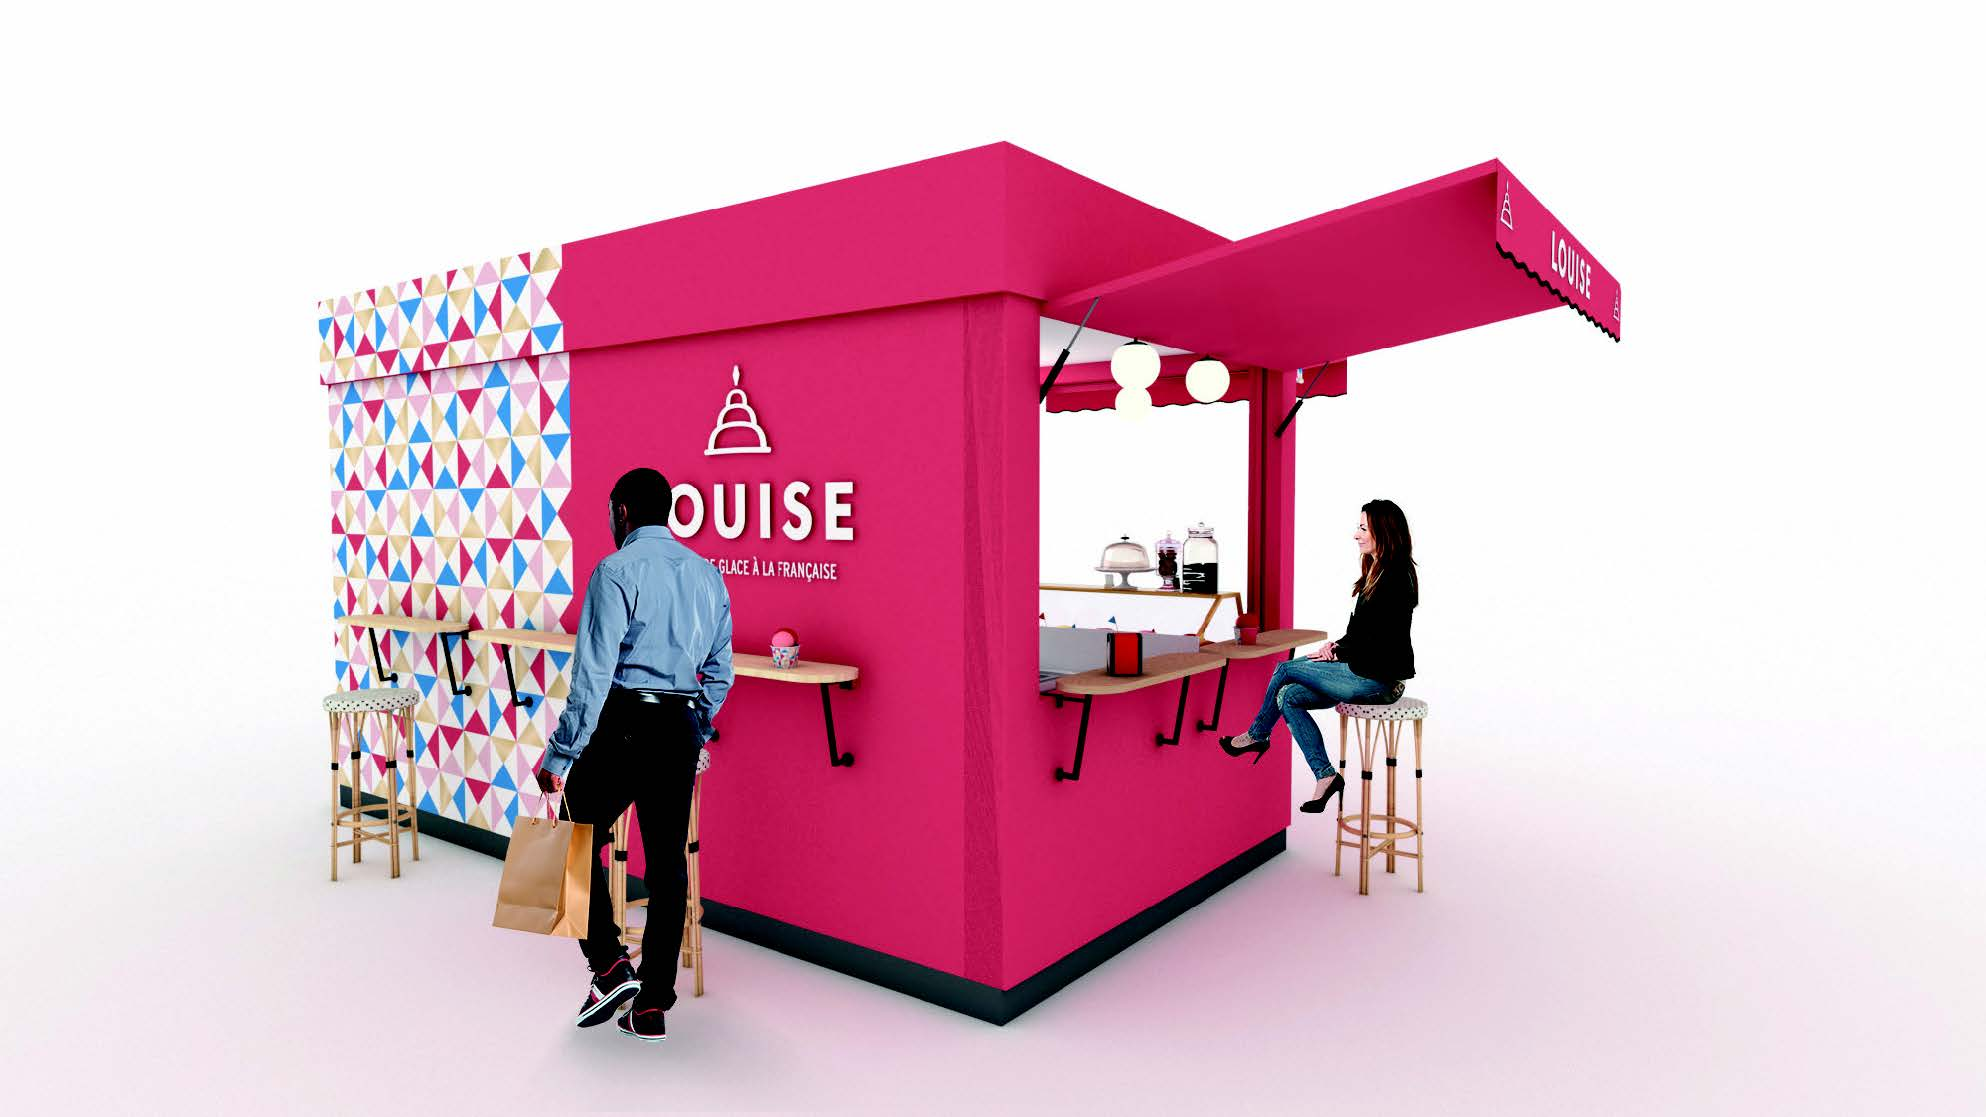 Kiosque de la franchise de glace Louise